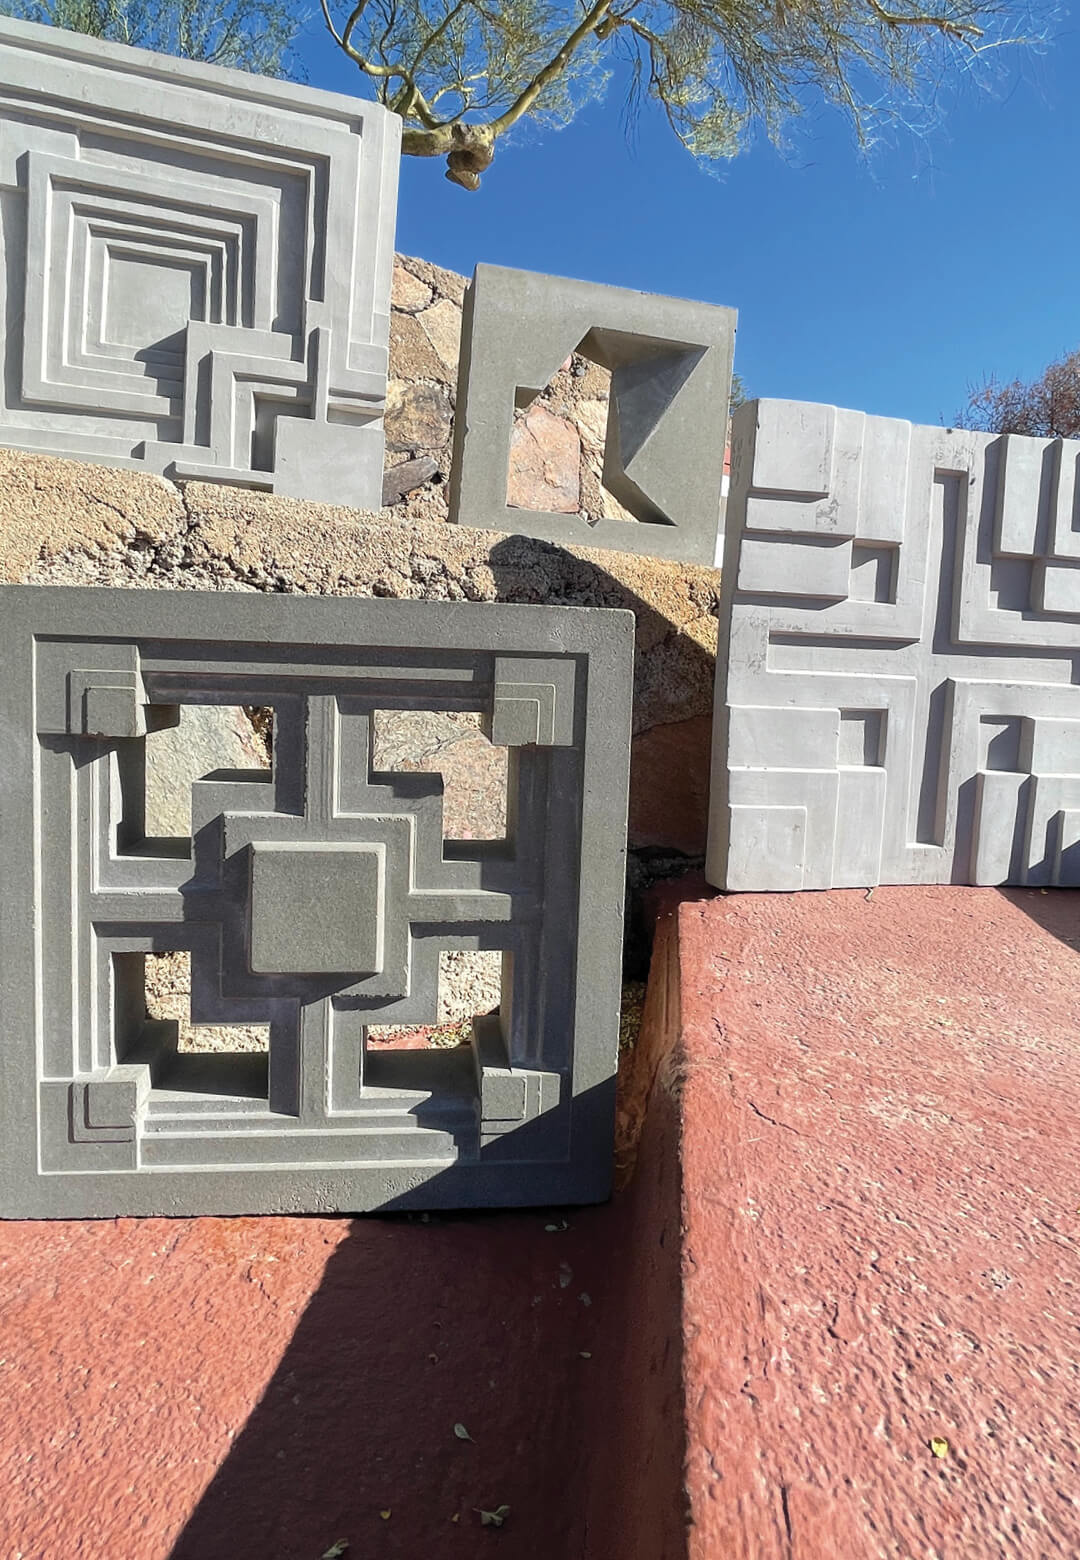 (Clockwise from top left) Ennis, Ablin, Millard and Storer Blocks and Tiles by The Frank Lloyd Wright Foundation in partnership with Eso Surfaces   Frank Lloyd Wright Foundation Textile Blocks and 3D Cement Tiles   STIRworld